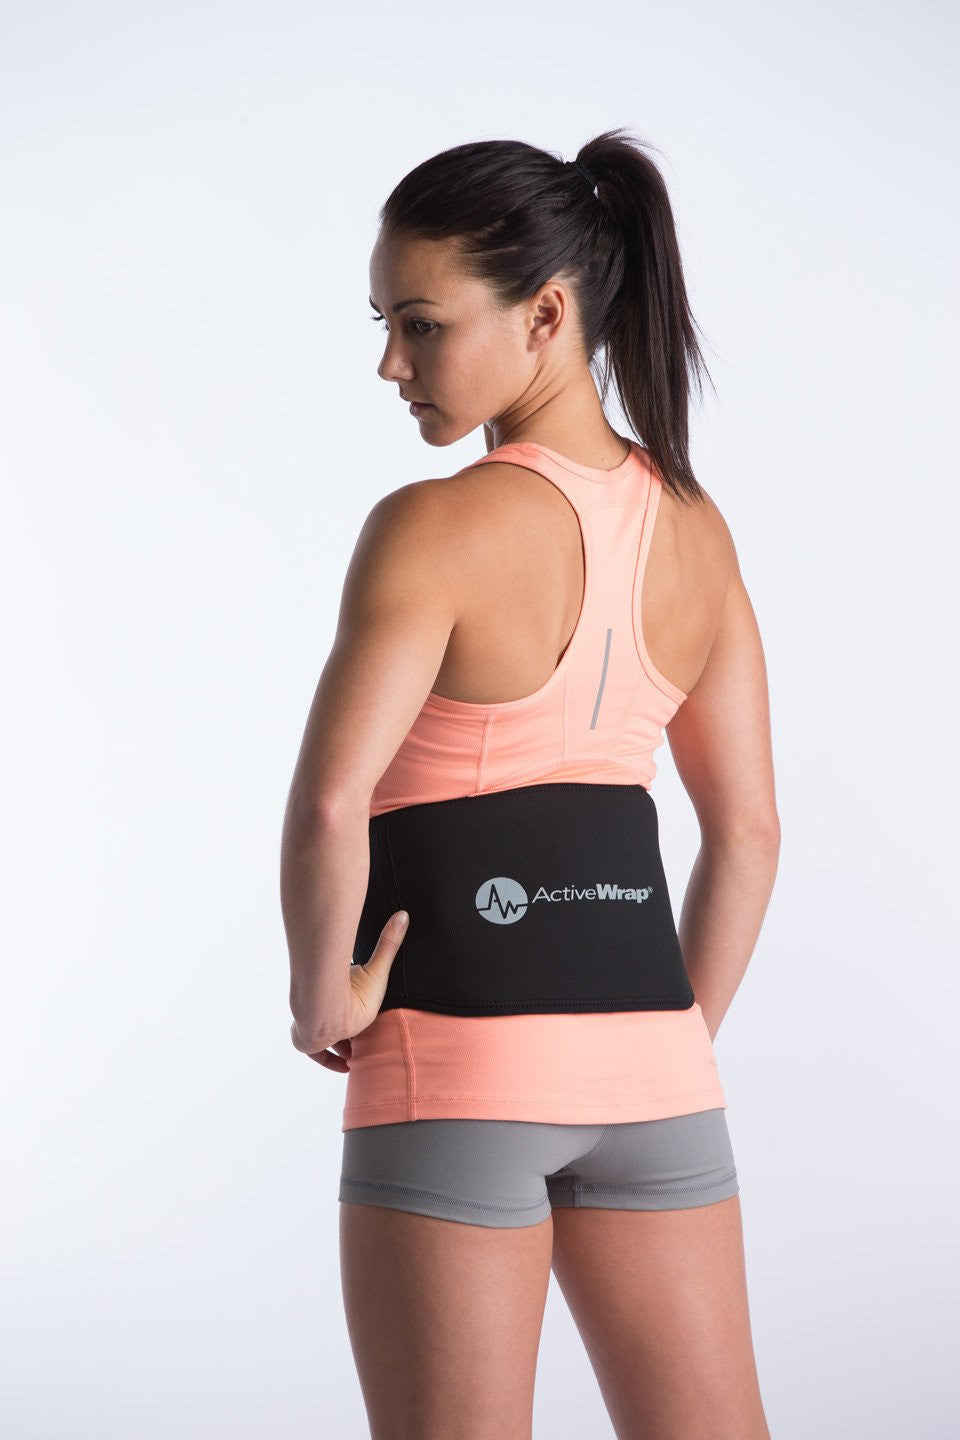 ActiveWrap Back Support- Back Ice Wrap,Back Pain Relief, Low Back Pain Relief